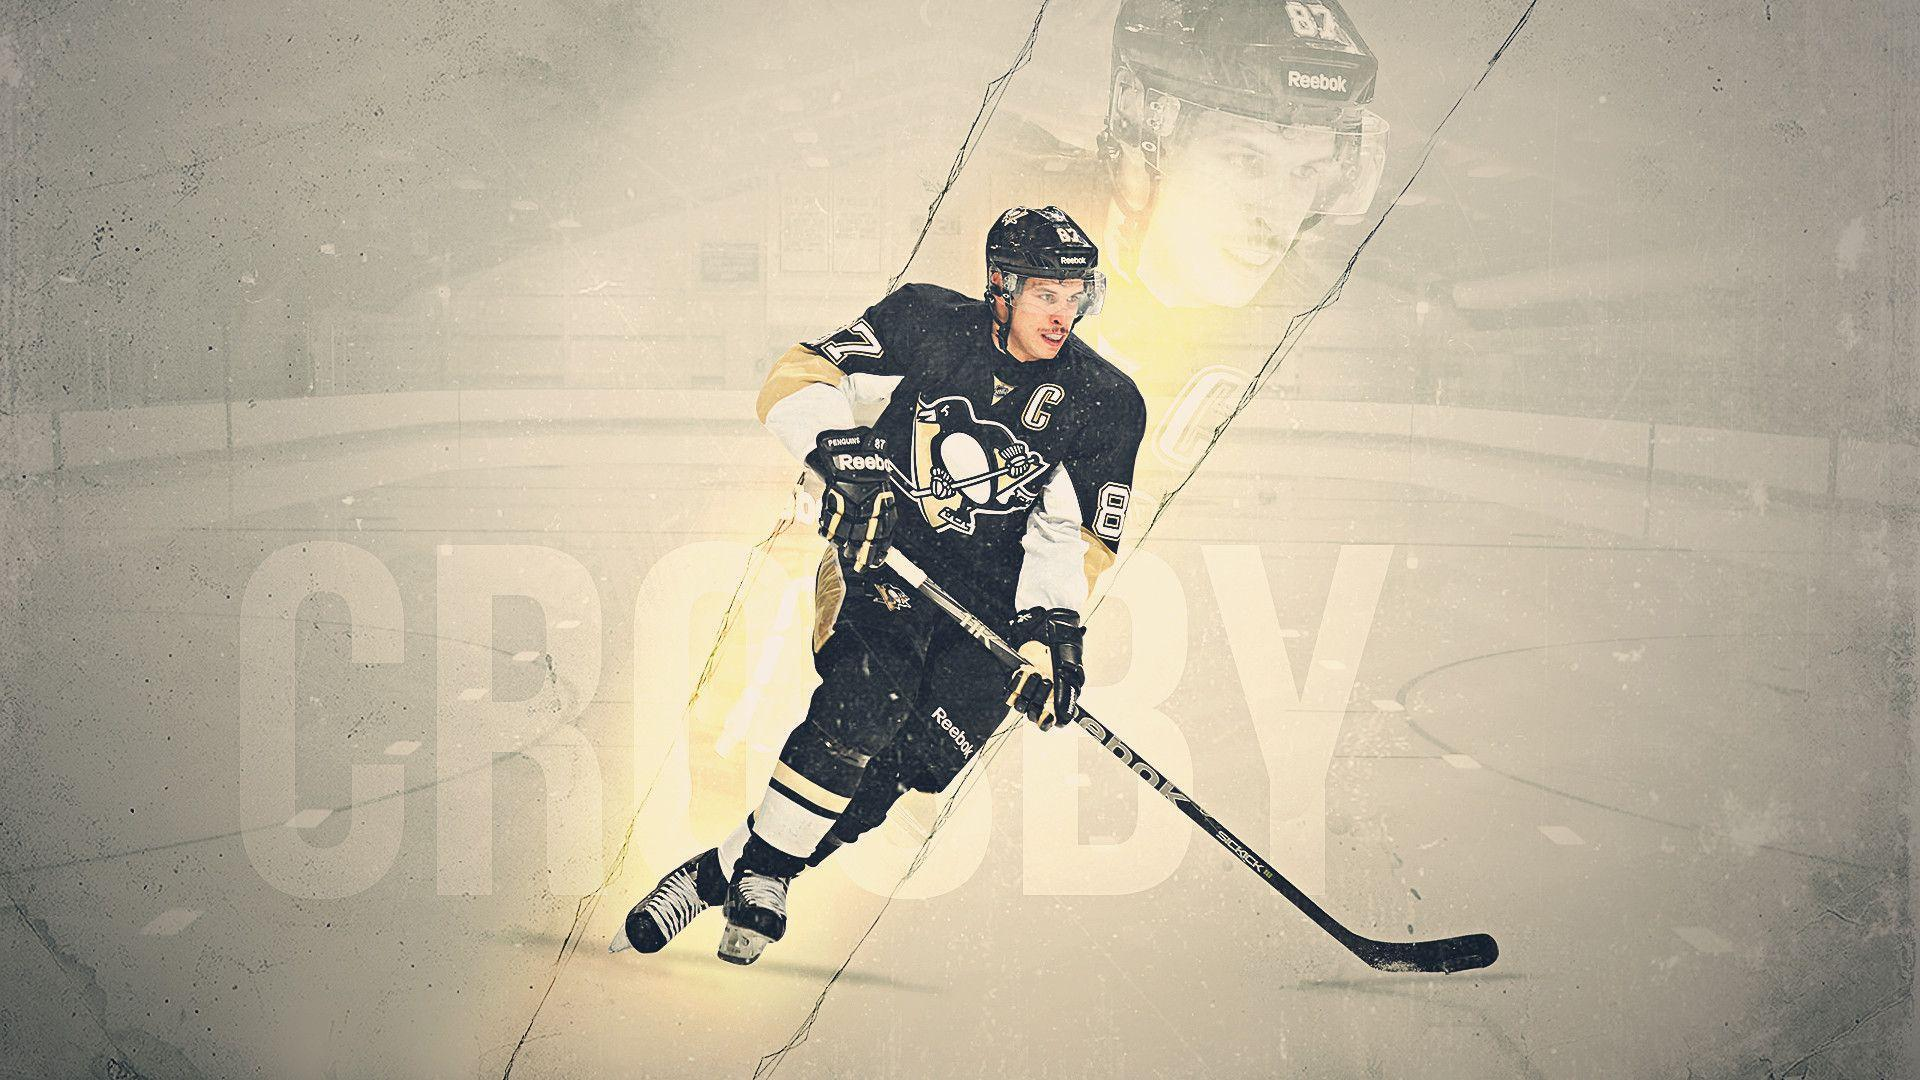 sidney crosby wallpaper nhl - photo #5